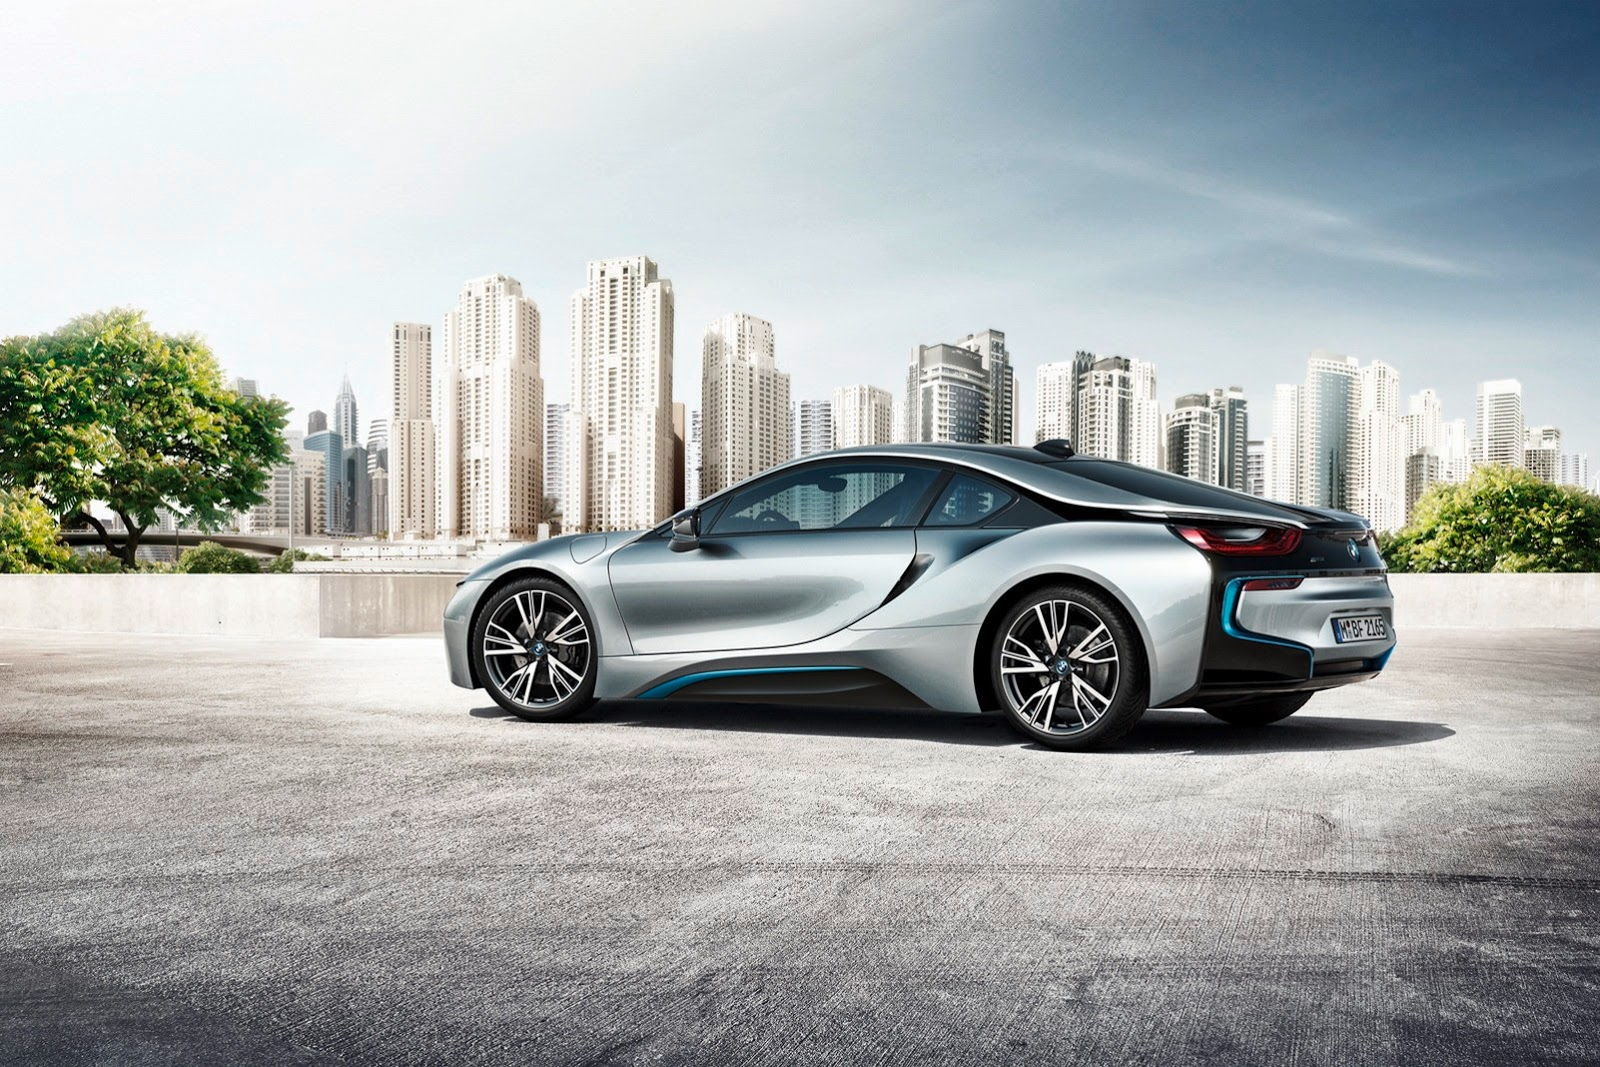 bmw i8 plug in hybrid sports car pictures and details video. Black Bedroom Furniture Sets. Home Design Ideas